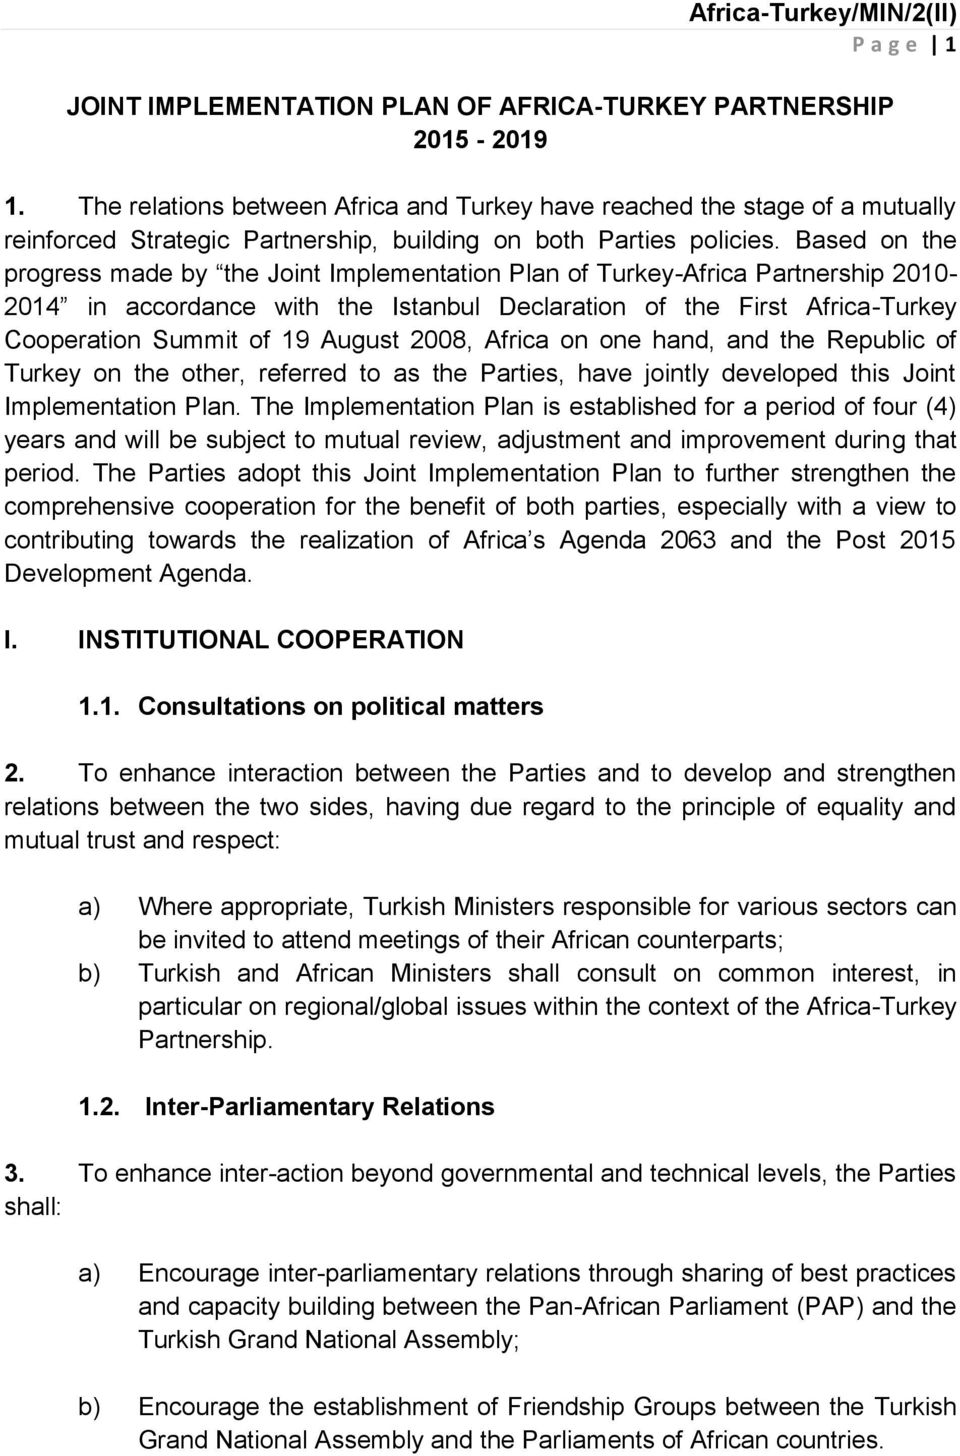 Based on the progress made by the Joint Implementation Plan of Turkey-Africa Partnership 2010-2014 in accordance with the Istanbul Declaration of the First Africa-Turkey Cooperation Summit of 19